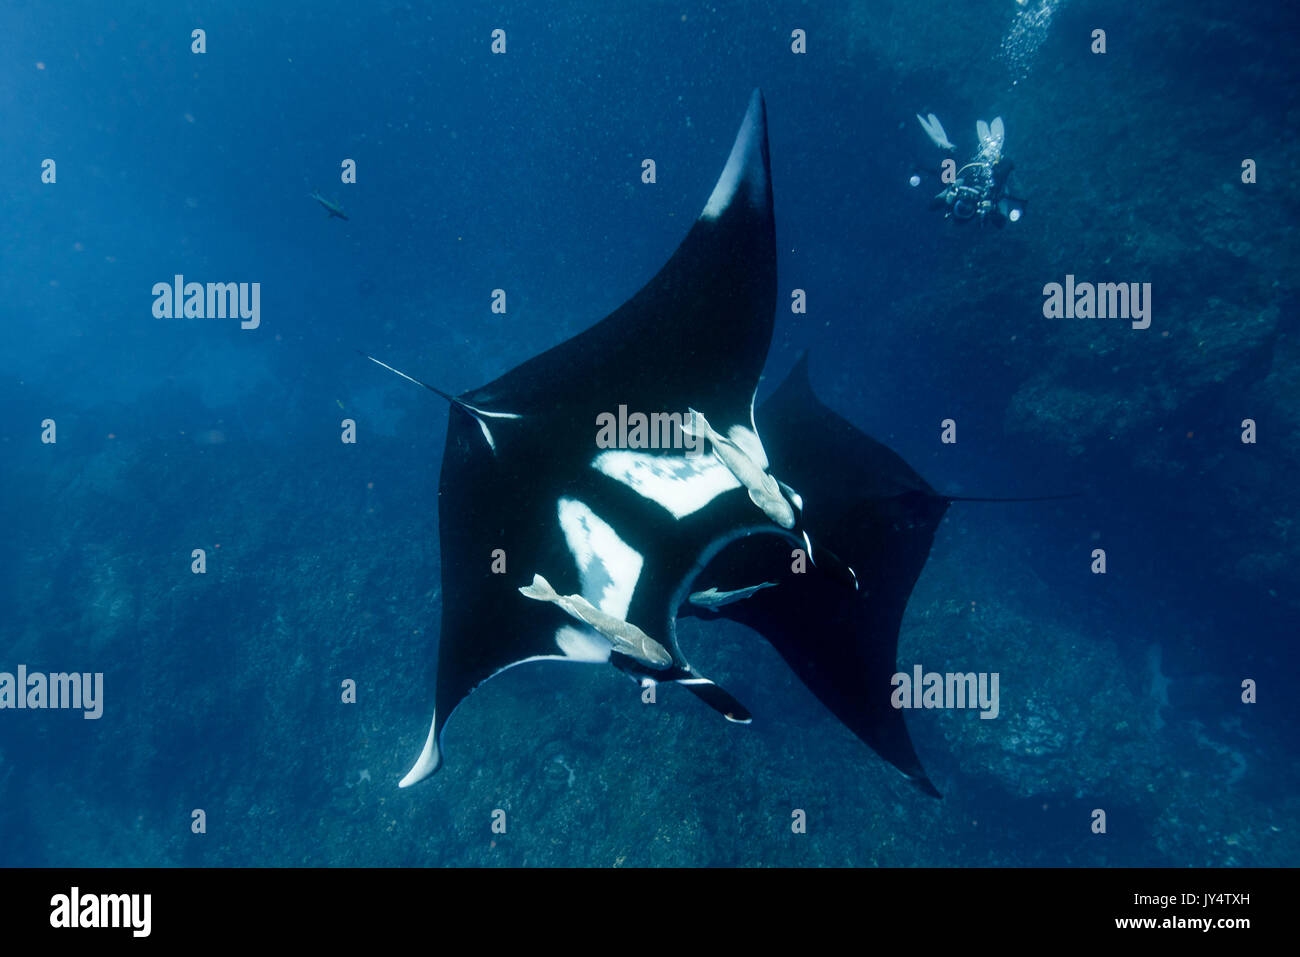 Two oceanic manta rays crossing paths, Revillagigedo Islands, Mexico. Stock Photo